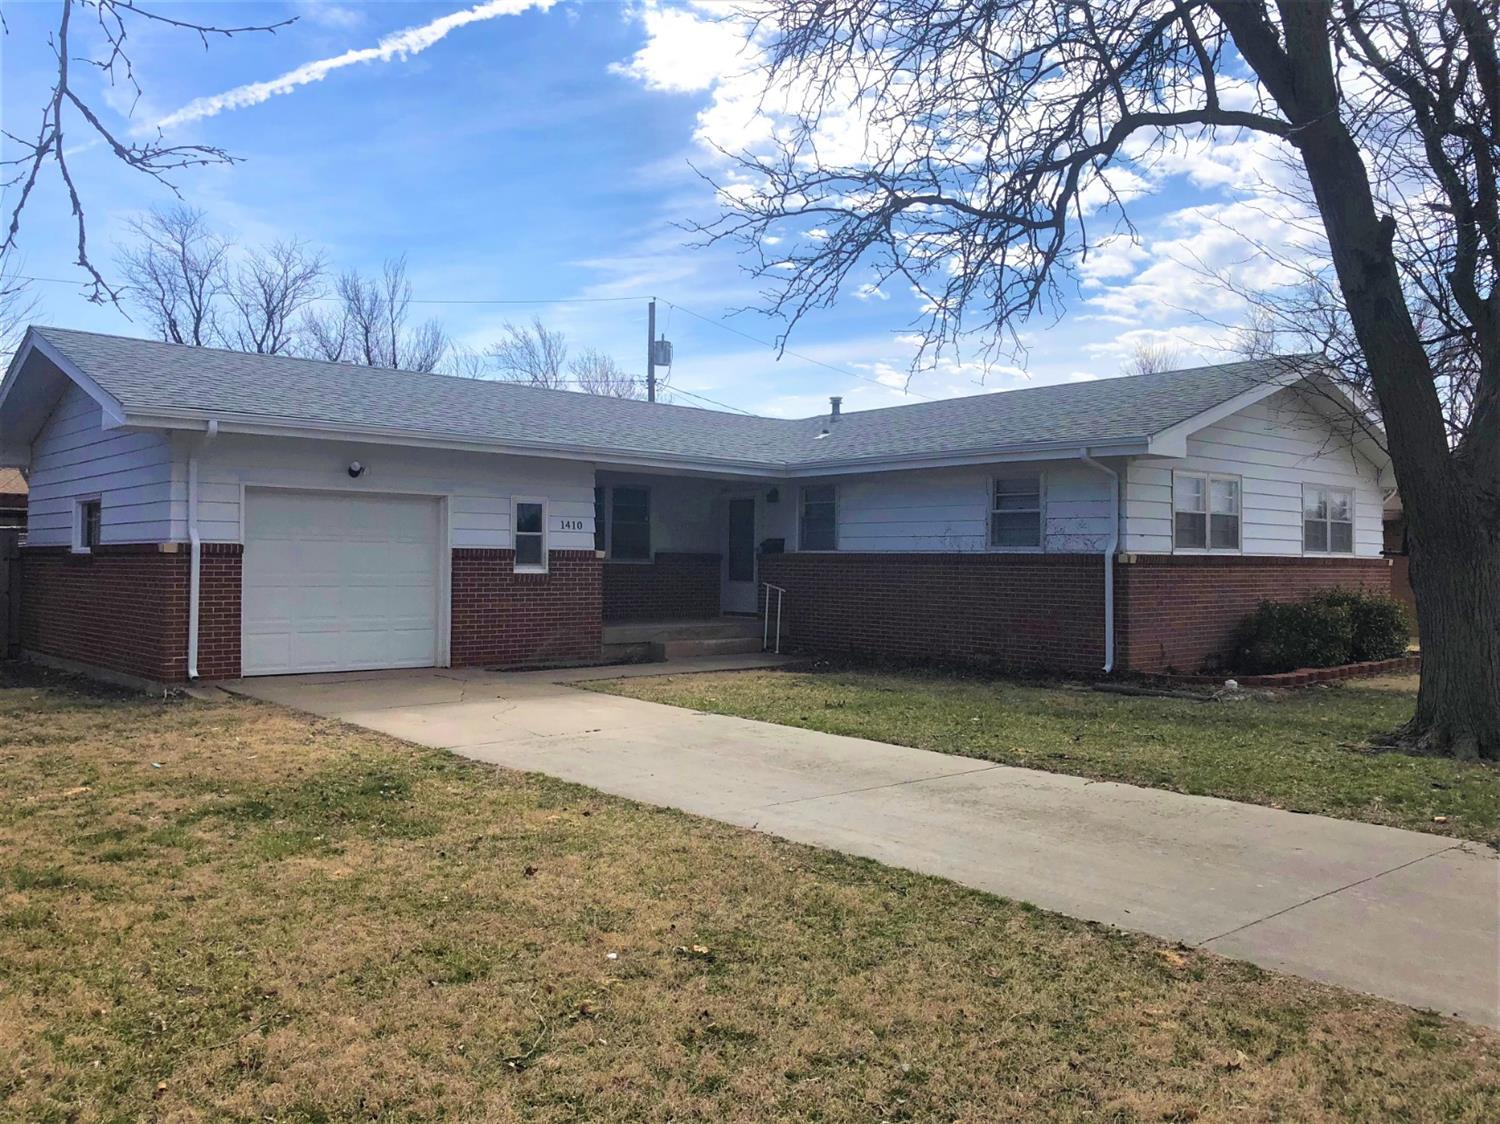 Must see this totally updated brick and sided ranch style home freshly painted and new flooring throughout, spacious livingroom, updated kitchen, with granite countertops, tile back splash, and tile floor, 3 bedrooms, 1 bath, 1,194 sq. ft., FA & CA, covered patio, dog run, fenced backyard and attached garage with bonus storage.